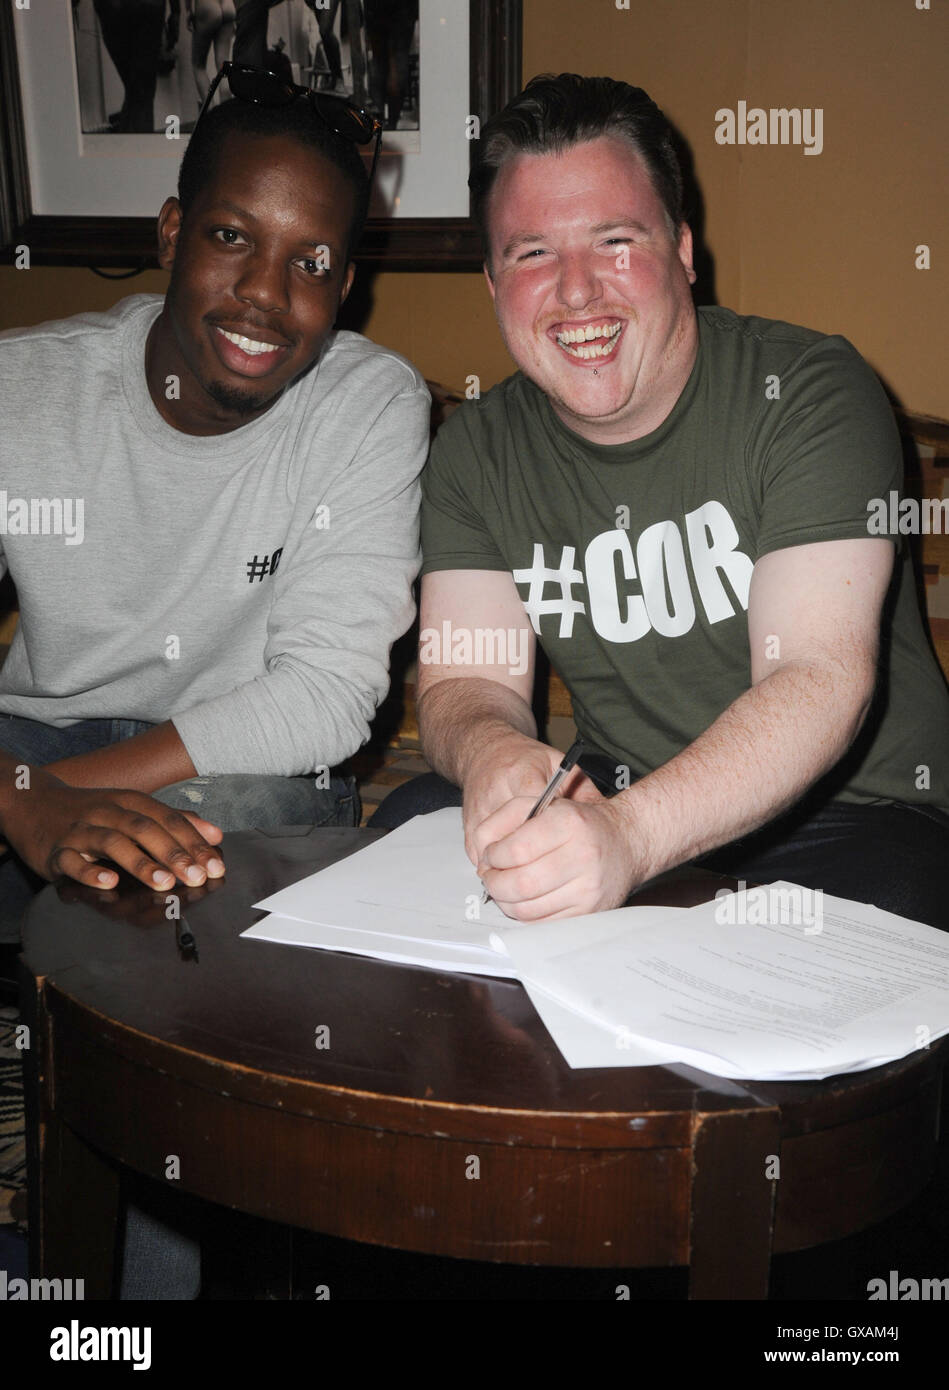 Britain's Got Talent 2015 contestant Paul Manners signs a recording contract with CO Records at The Dorchester - Stock Image